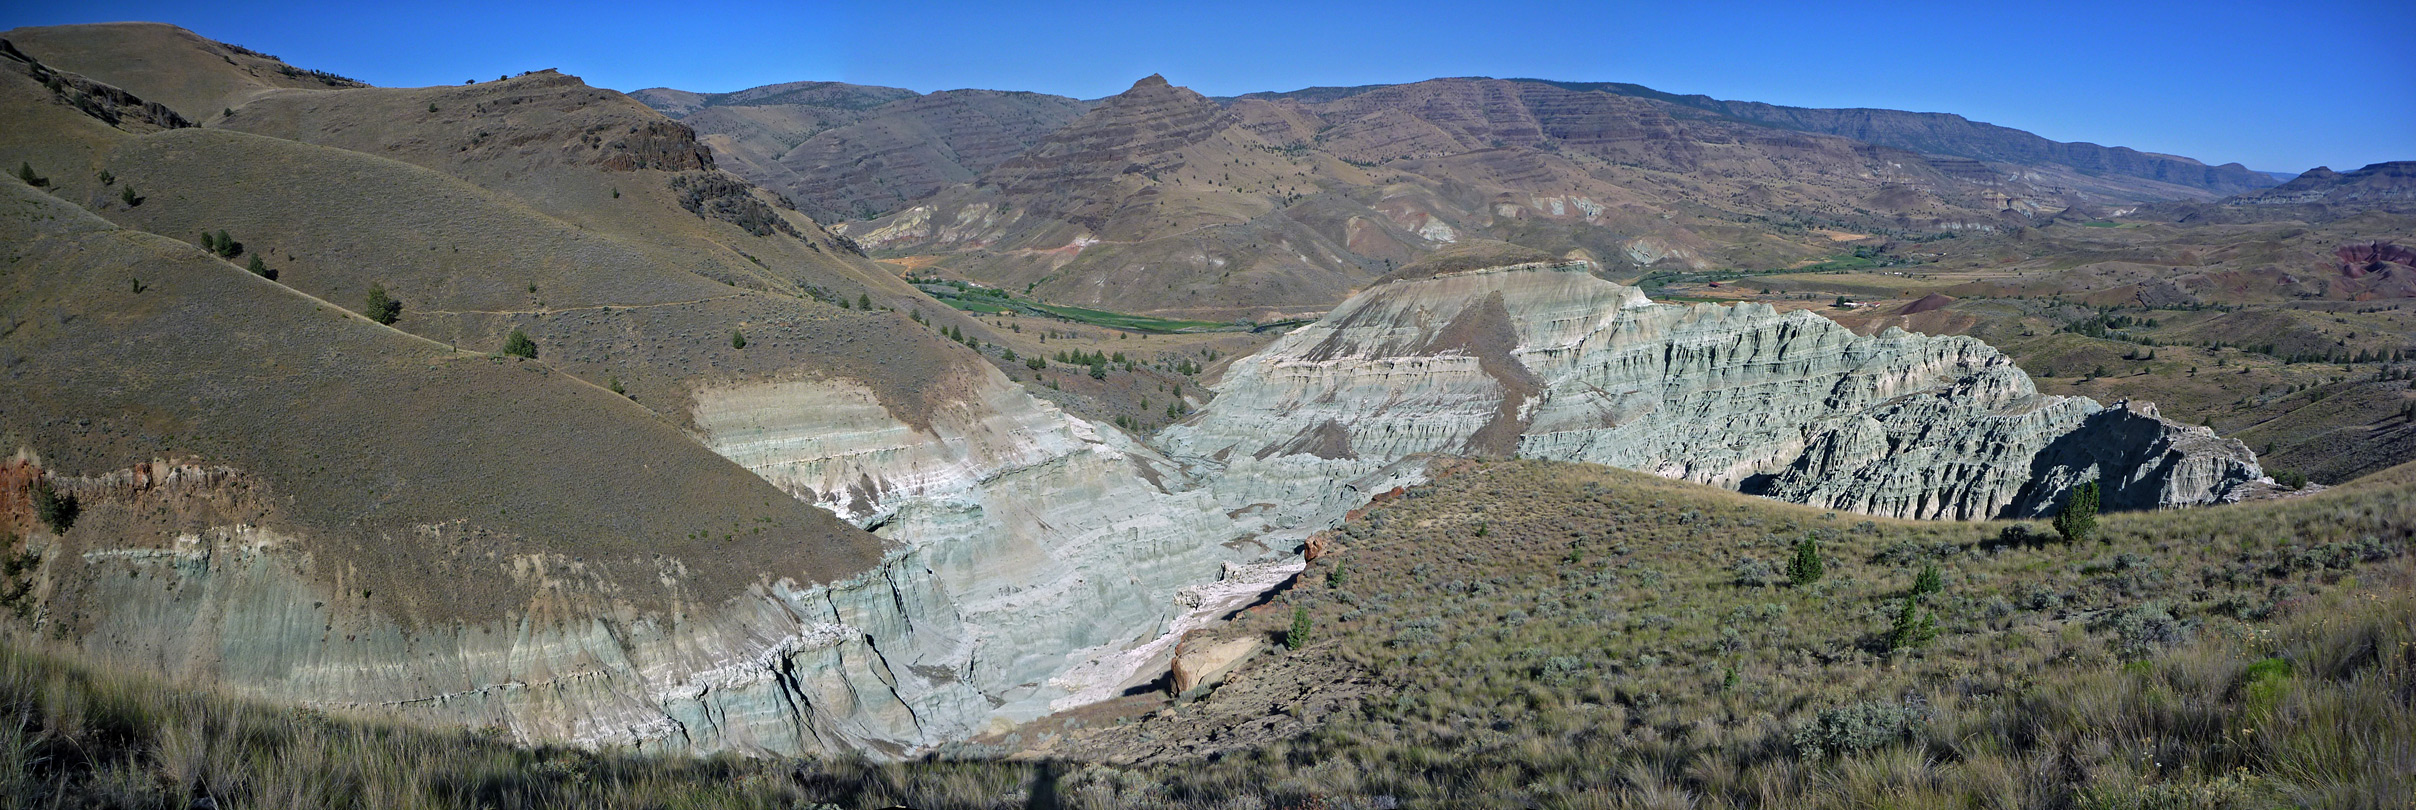 Wide view of Blue Basin